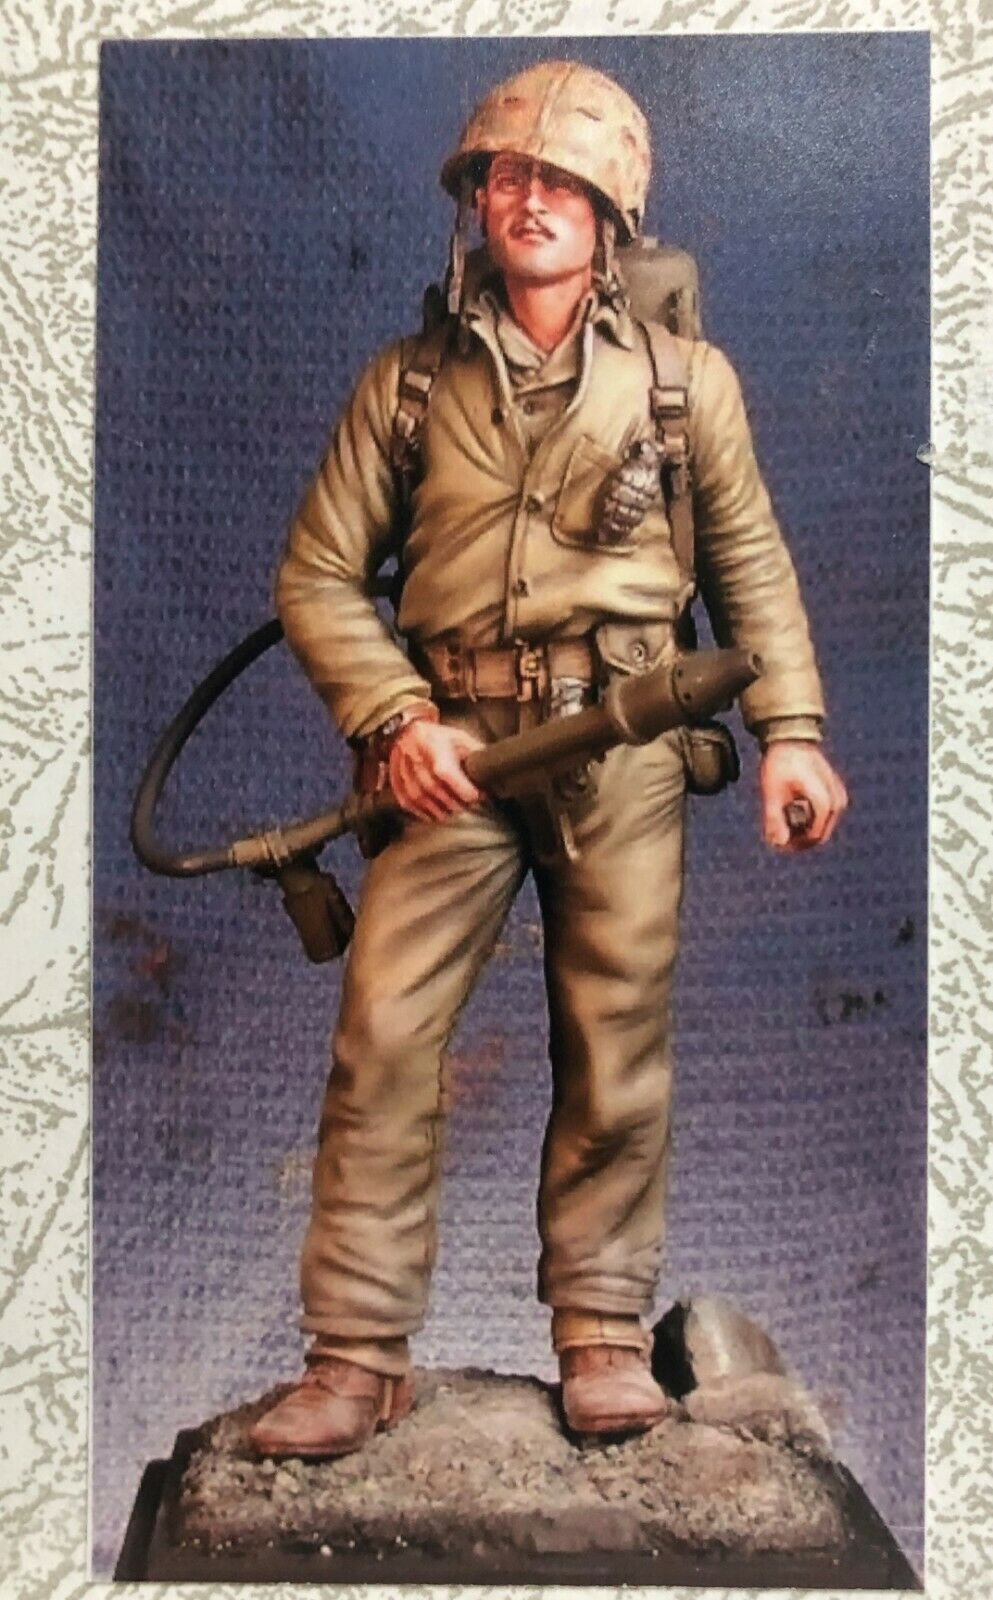 1 16 120MM RESIN Figura THE REGIMENTAL S4 USMC FLAMETHROWER IWO JIMA 1945. NEW.